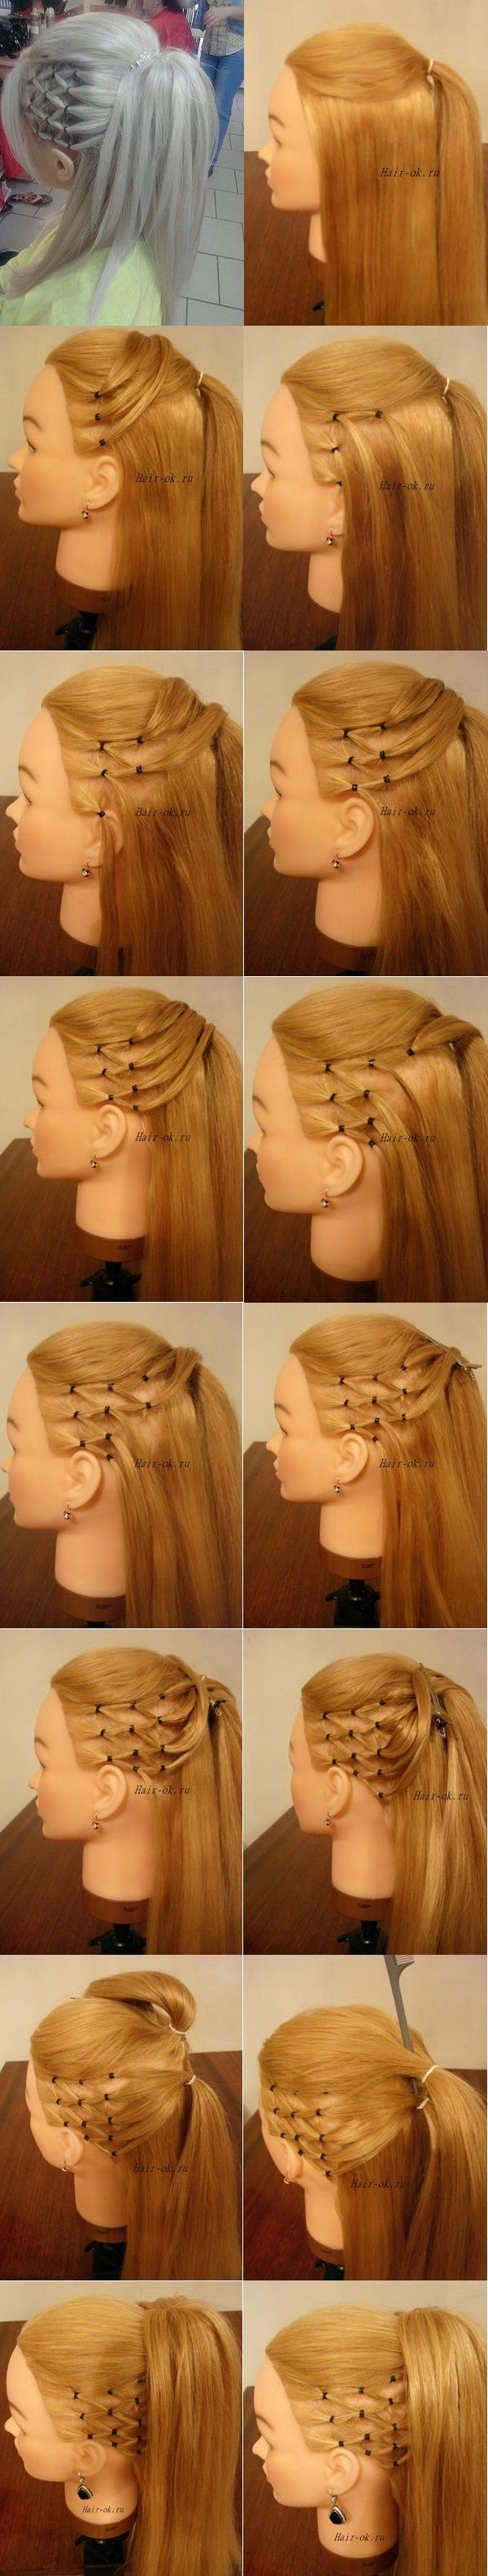 elegant hairstyle idea